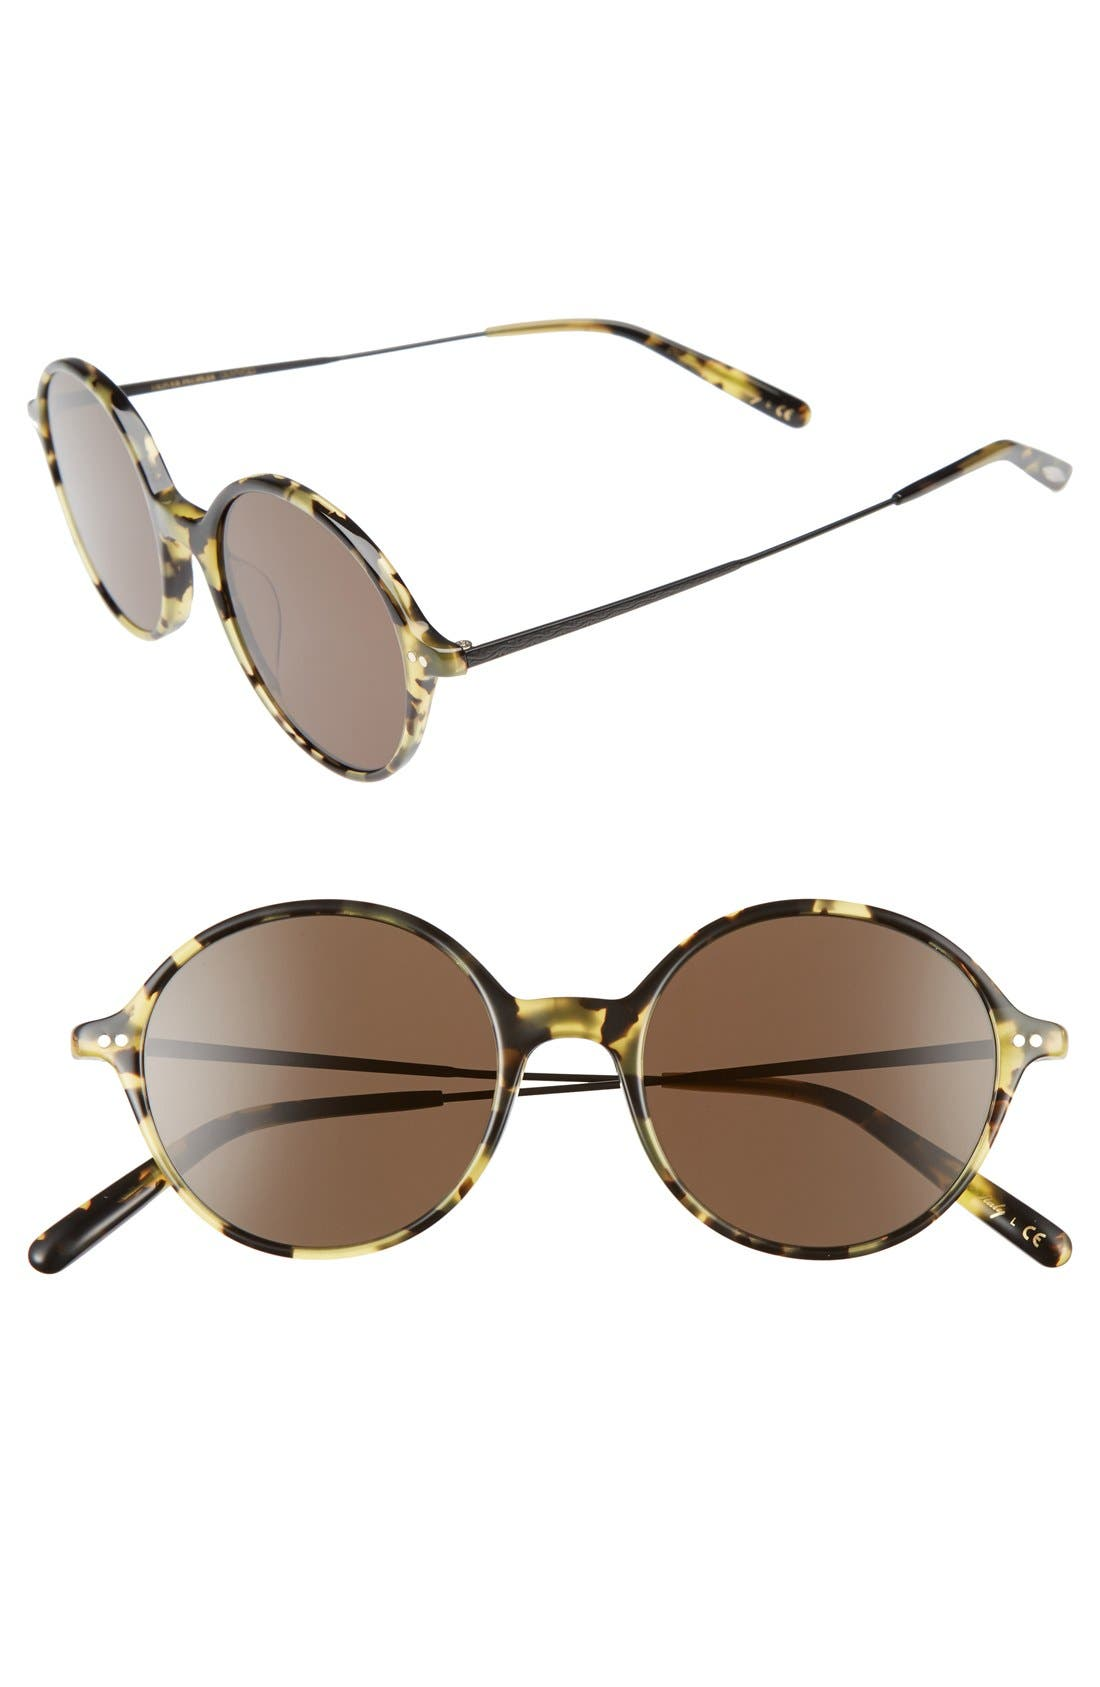 Corby 51mm Round Sunglasses,                         Main,                         color,